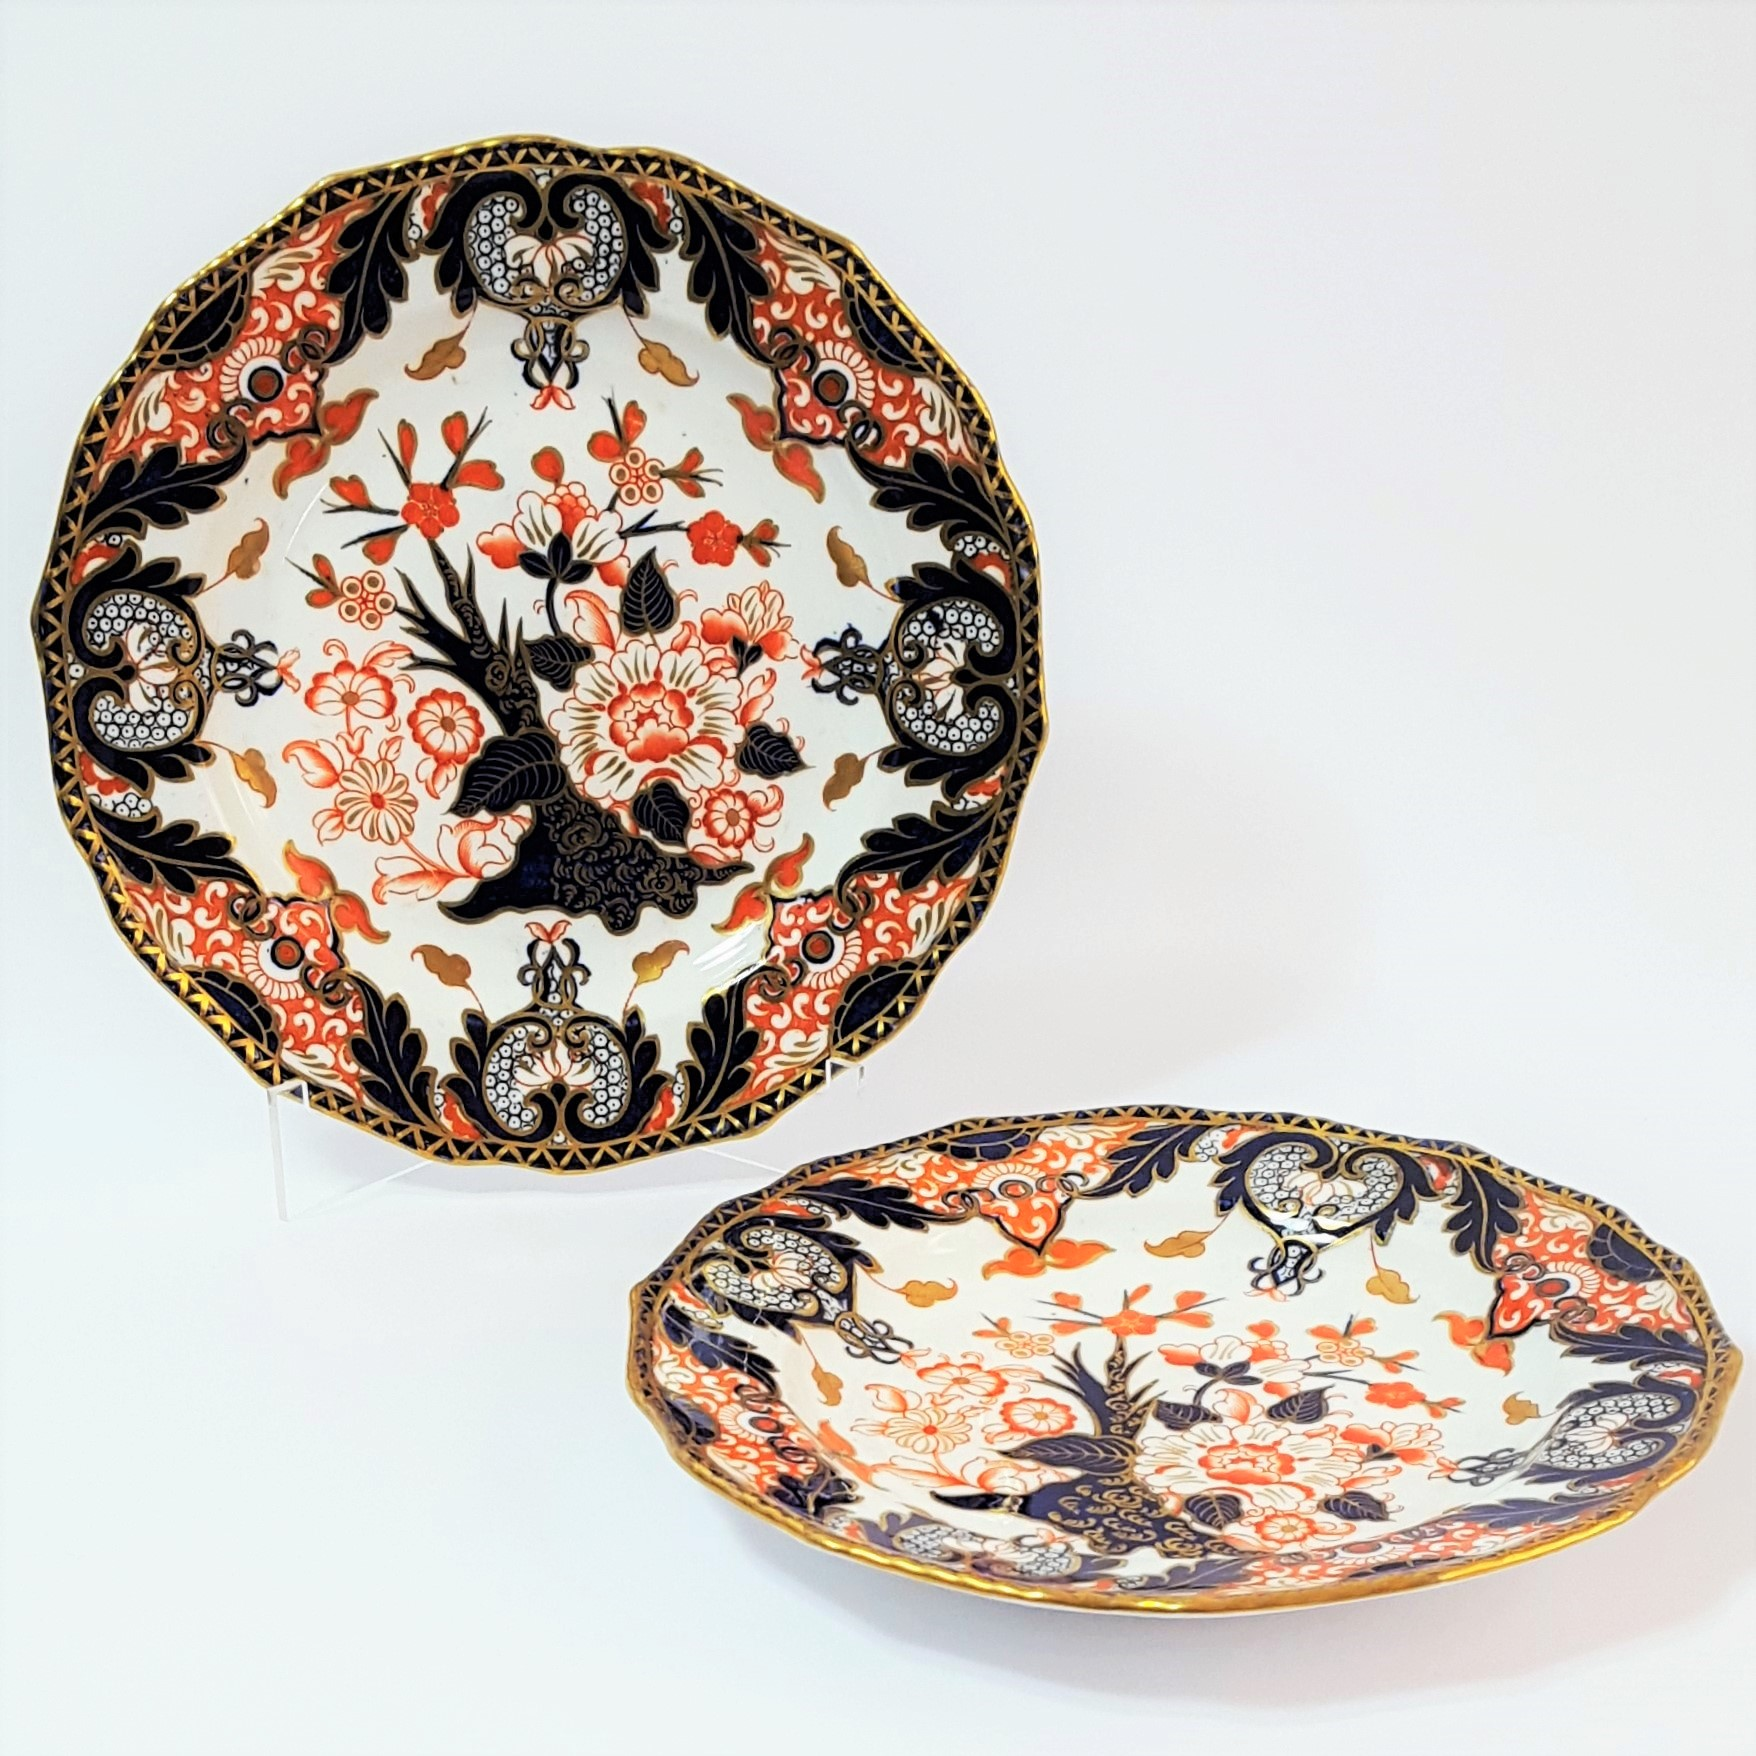 Royal Crown Derby Plates